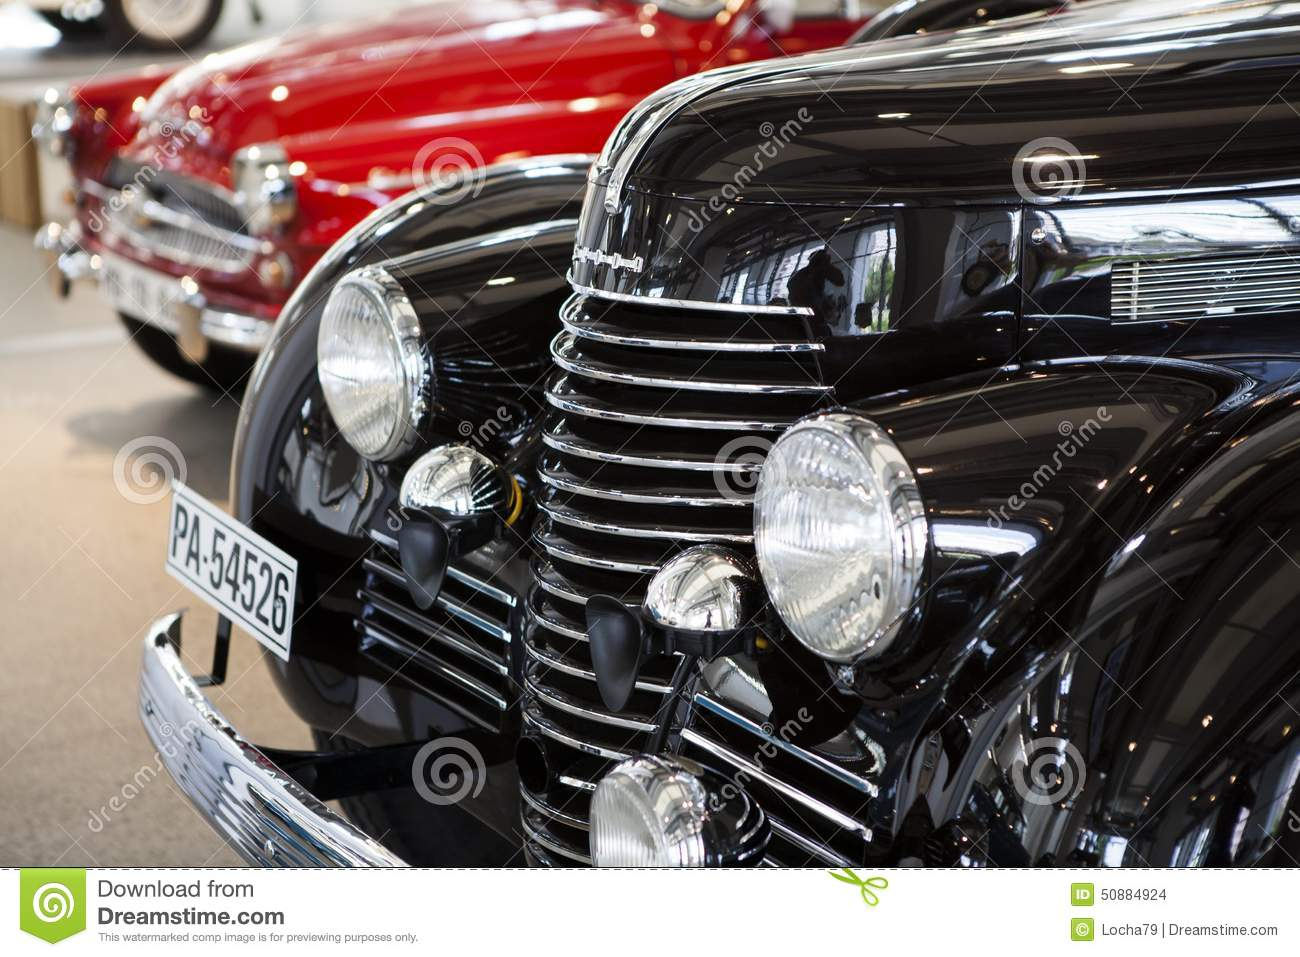 Old car editorial stock image. Image of mlada, fabia - 50884924